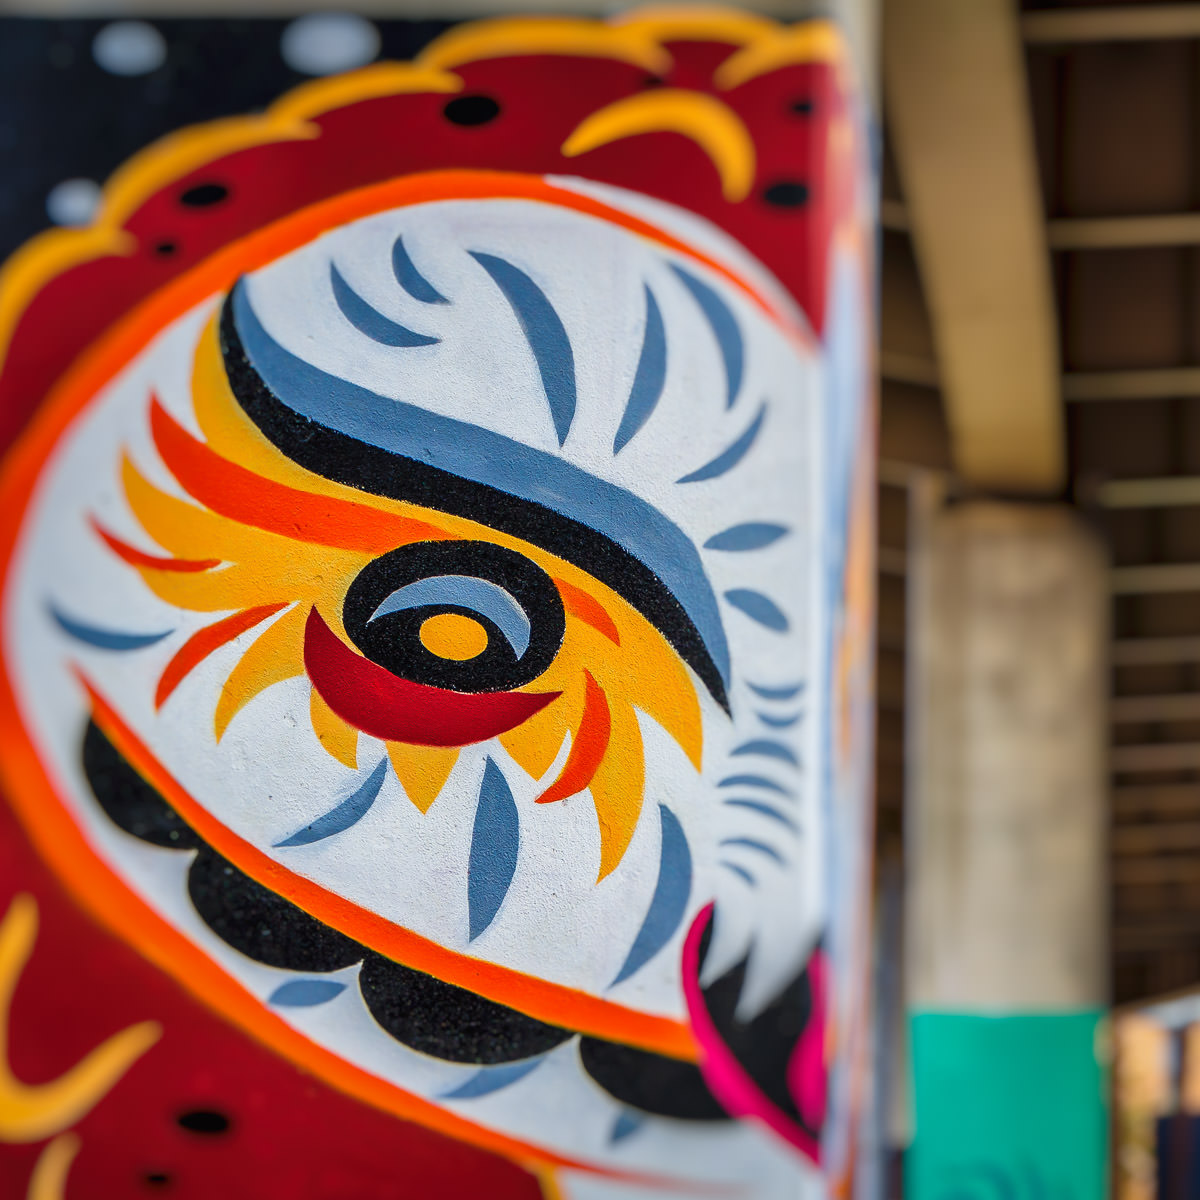 A mural on a freeway support column under I-345 (an unsigned Interstate that connects Interstate 45 with US 75 on the east side of Downtown Dallas) near Deep Ellum.